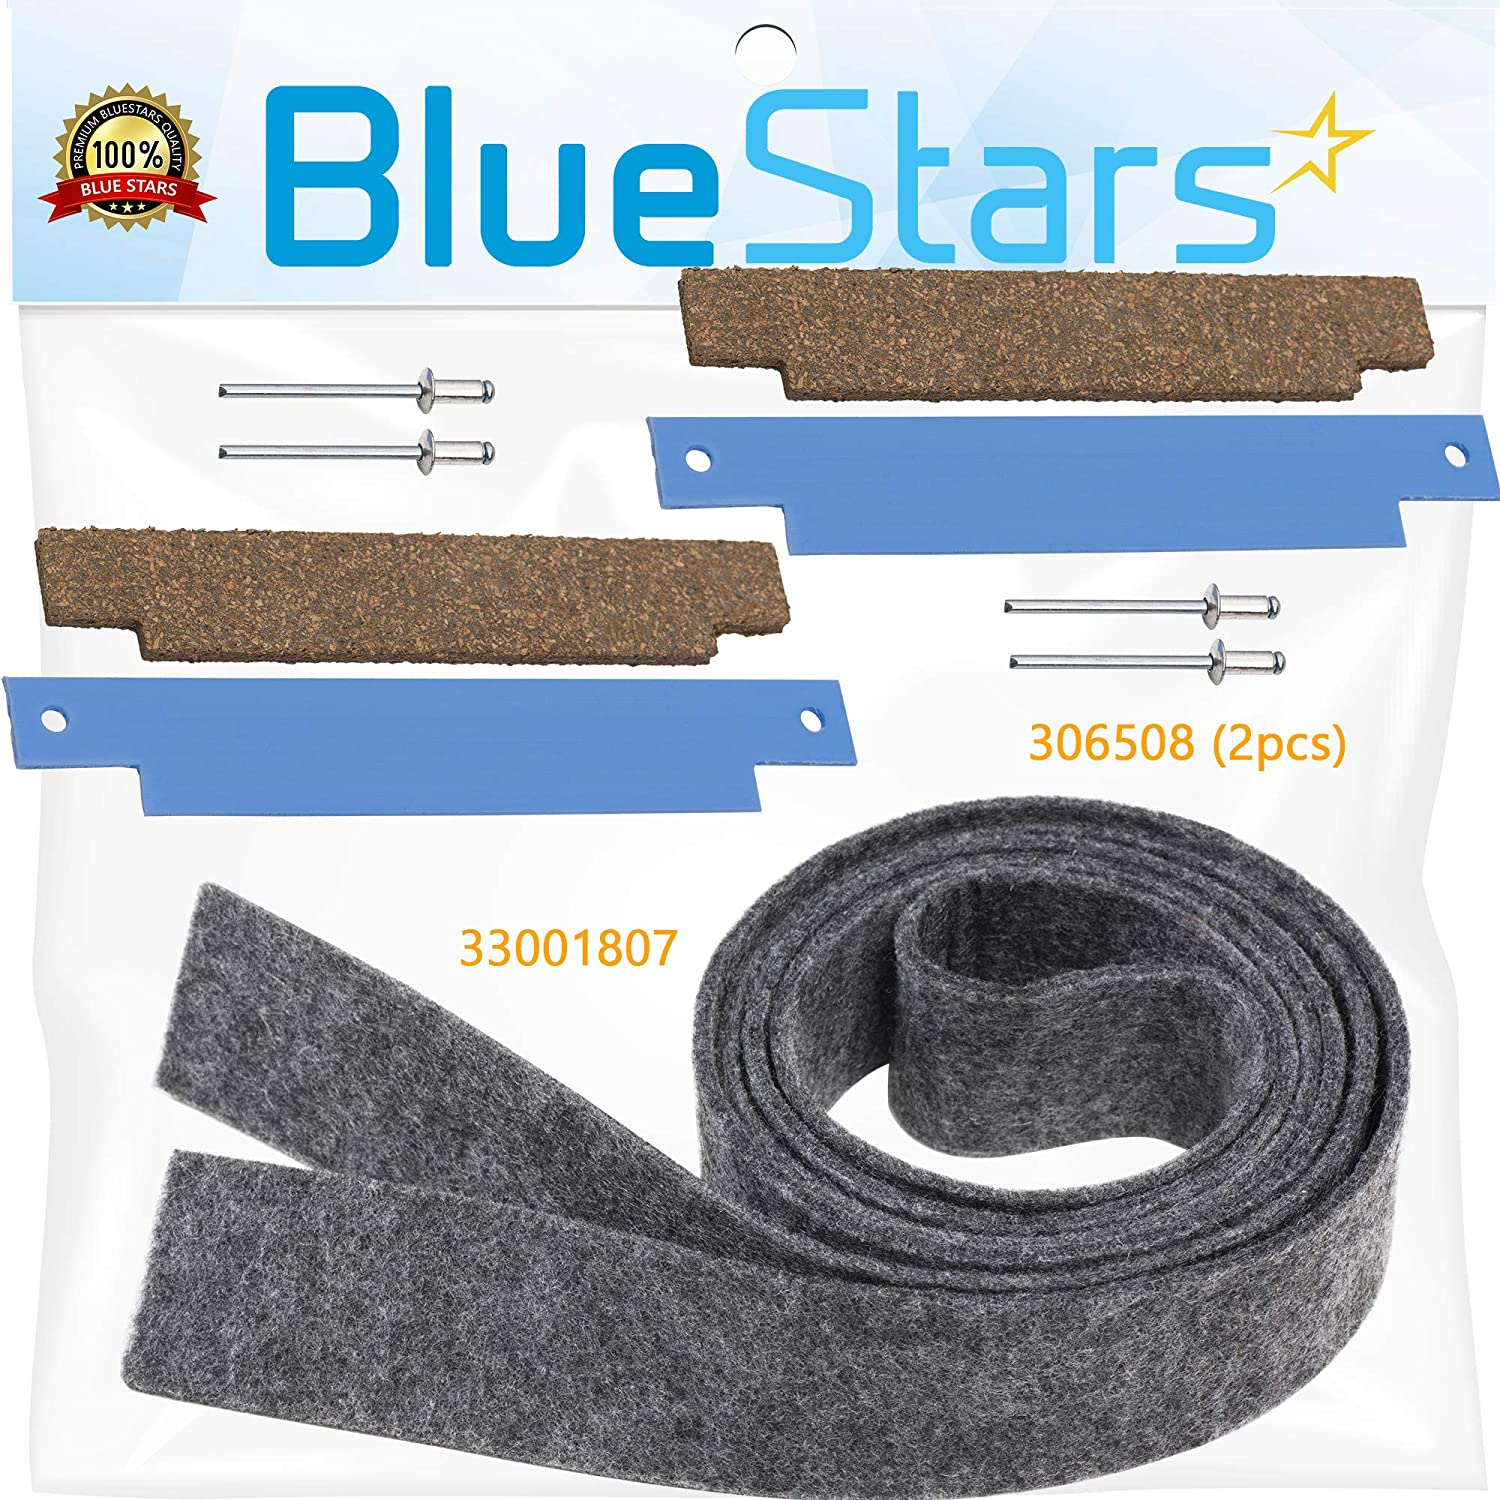 Ultra Durable 33001807 & 306508 Dryer Drum Felt Seal With Tumbler Bearing Kit by Blue Stars - Exact Fit for Whirlpool & Kenmore Dryers - Replaces WP33001807 306508VP PS1804752 AP4037304